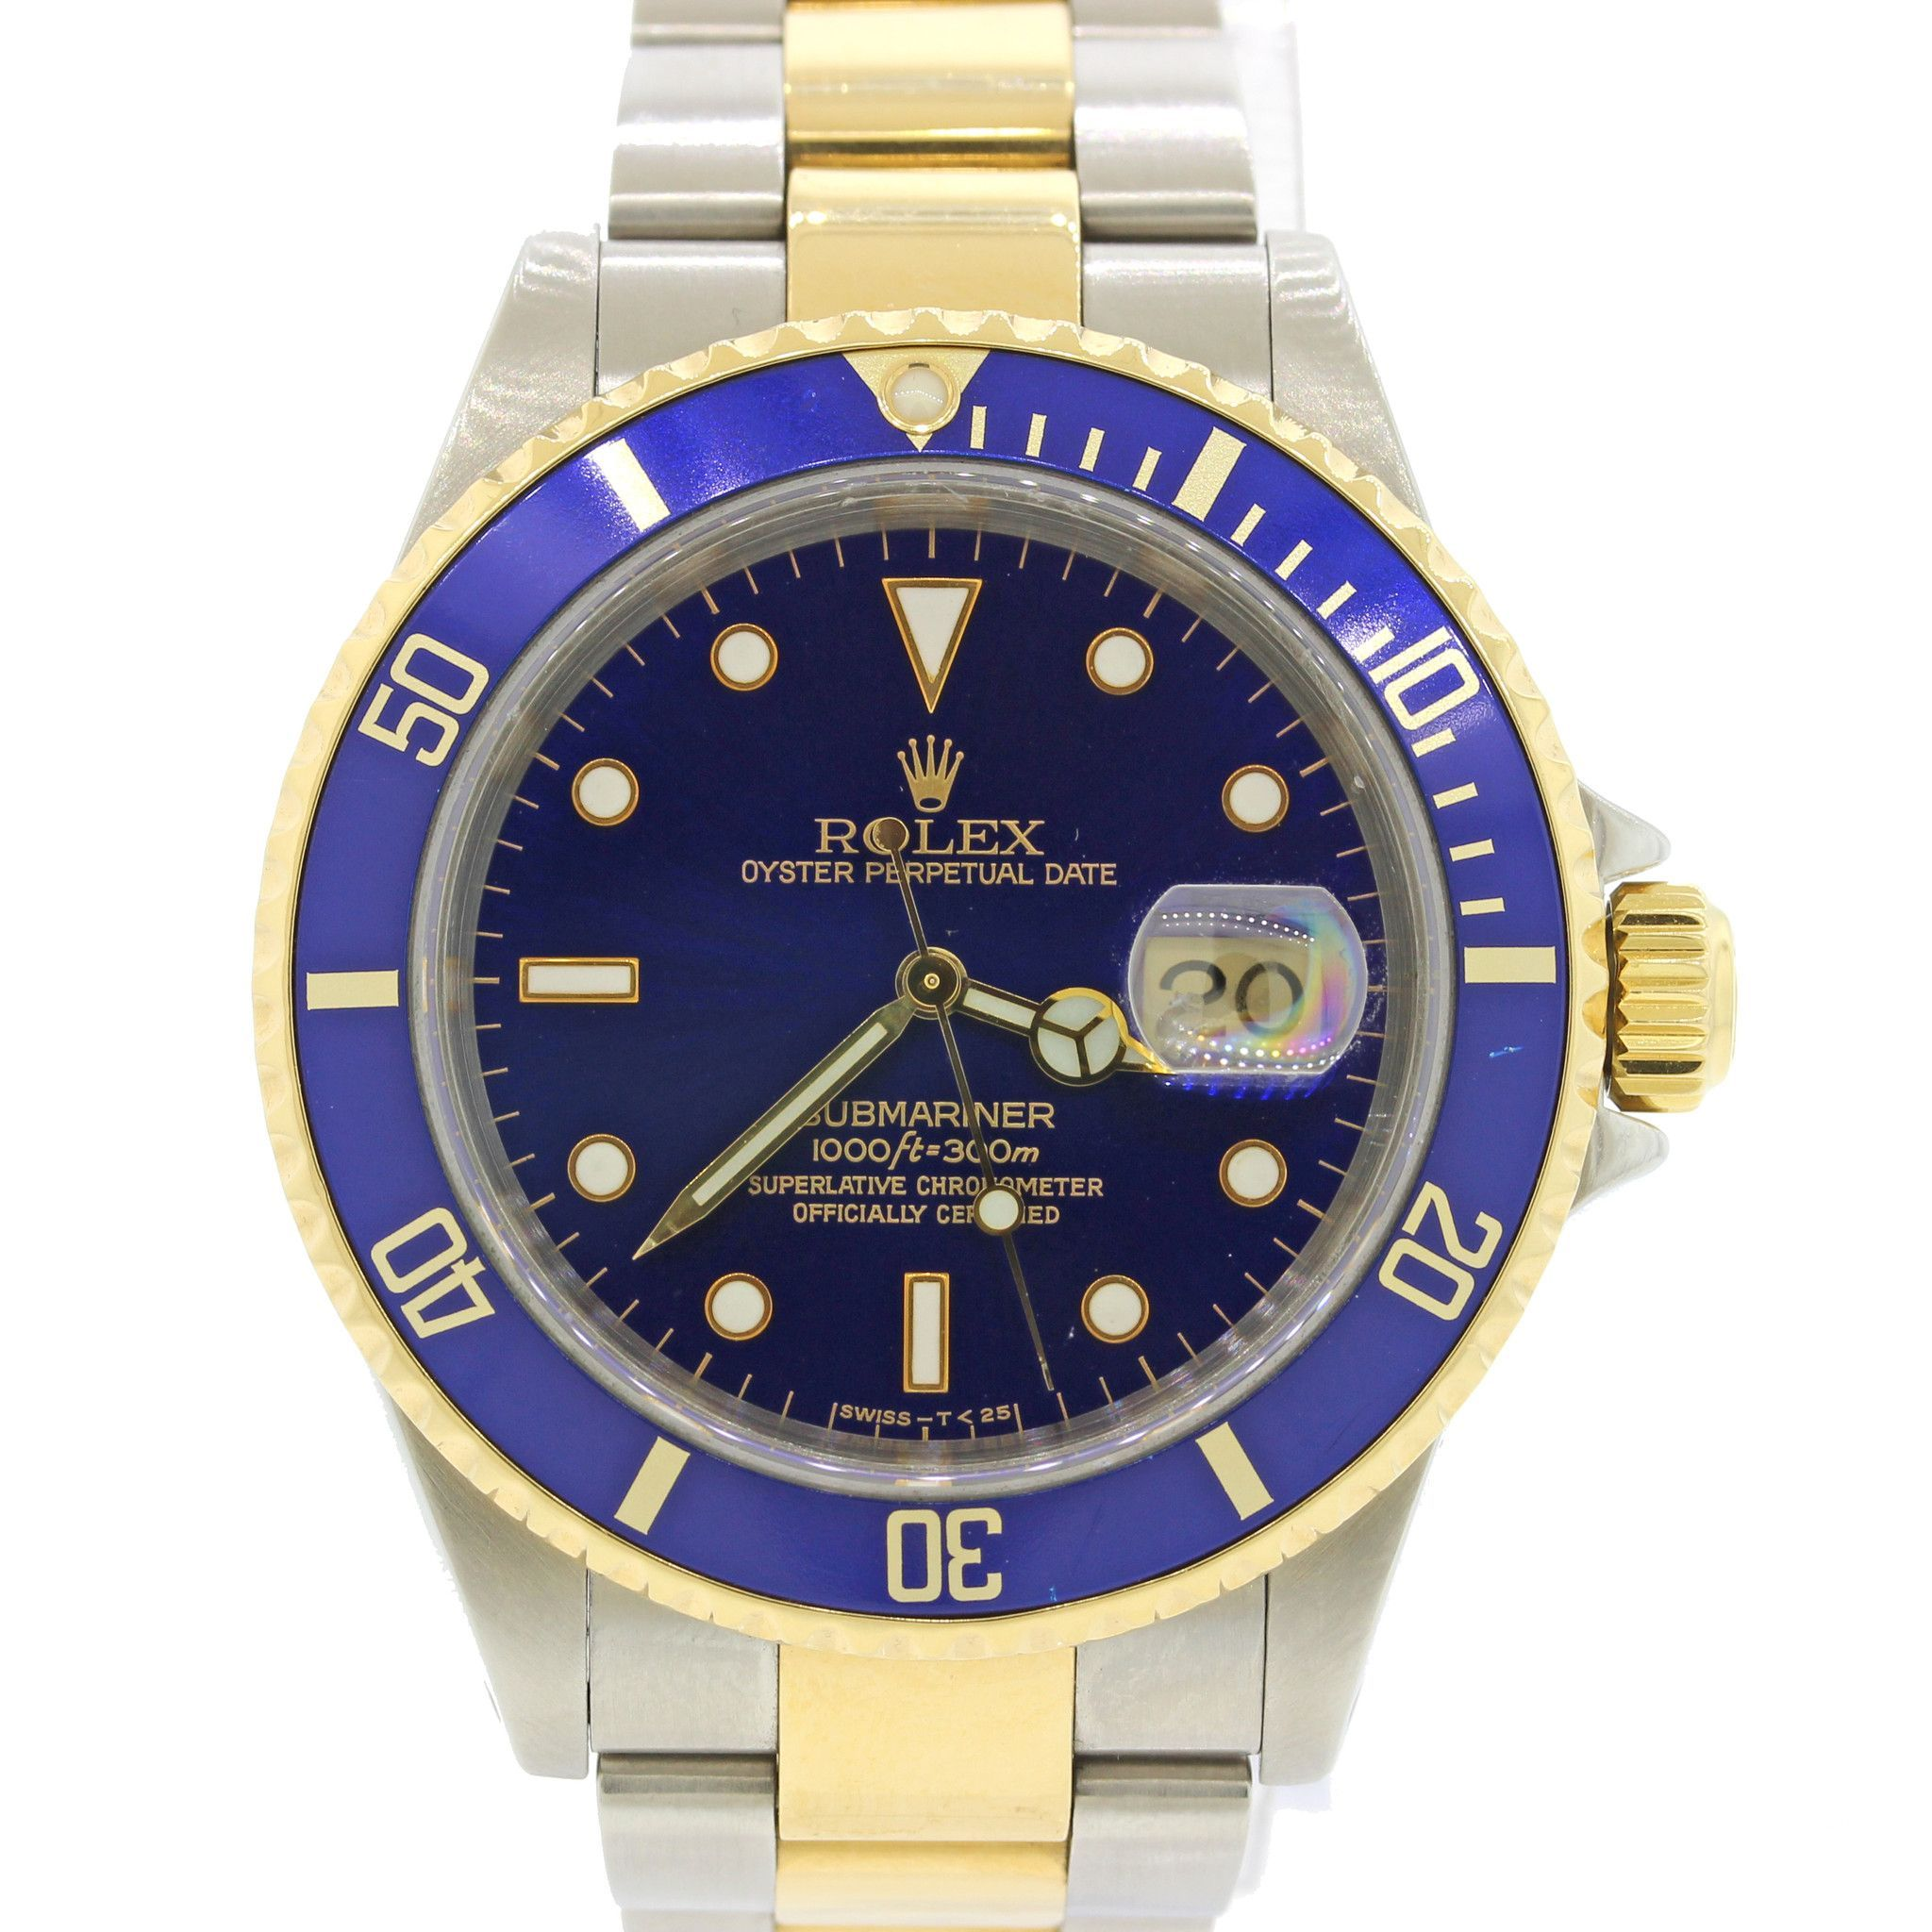 f999b77942a Rolex Submariner 16613 Steel 18k Gold Two Tone Blue Date Diver Watch with  OrgBox